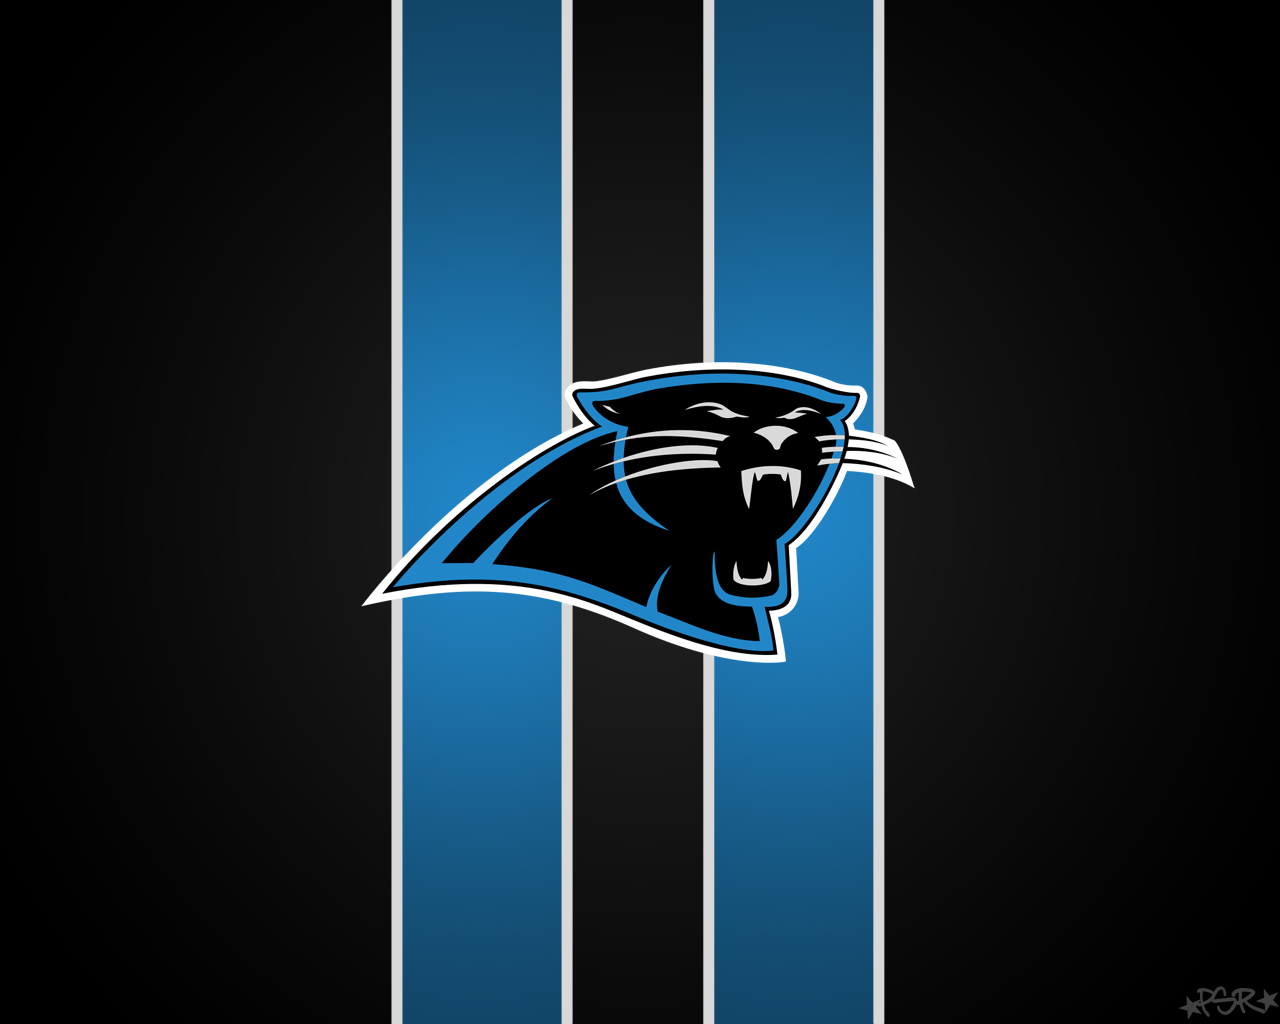 Panthers Logo with Stripes on Black Background by pasar3 1280 x 1280x1024